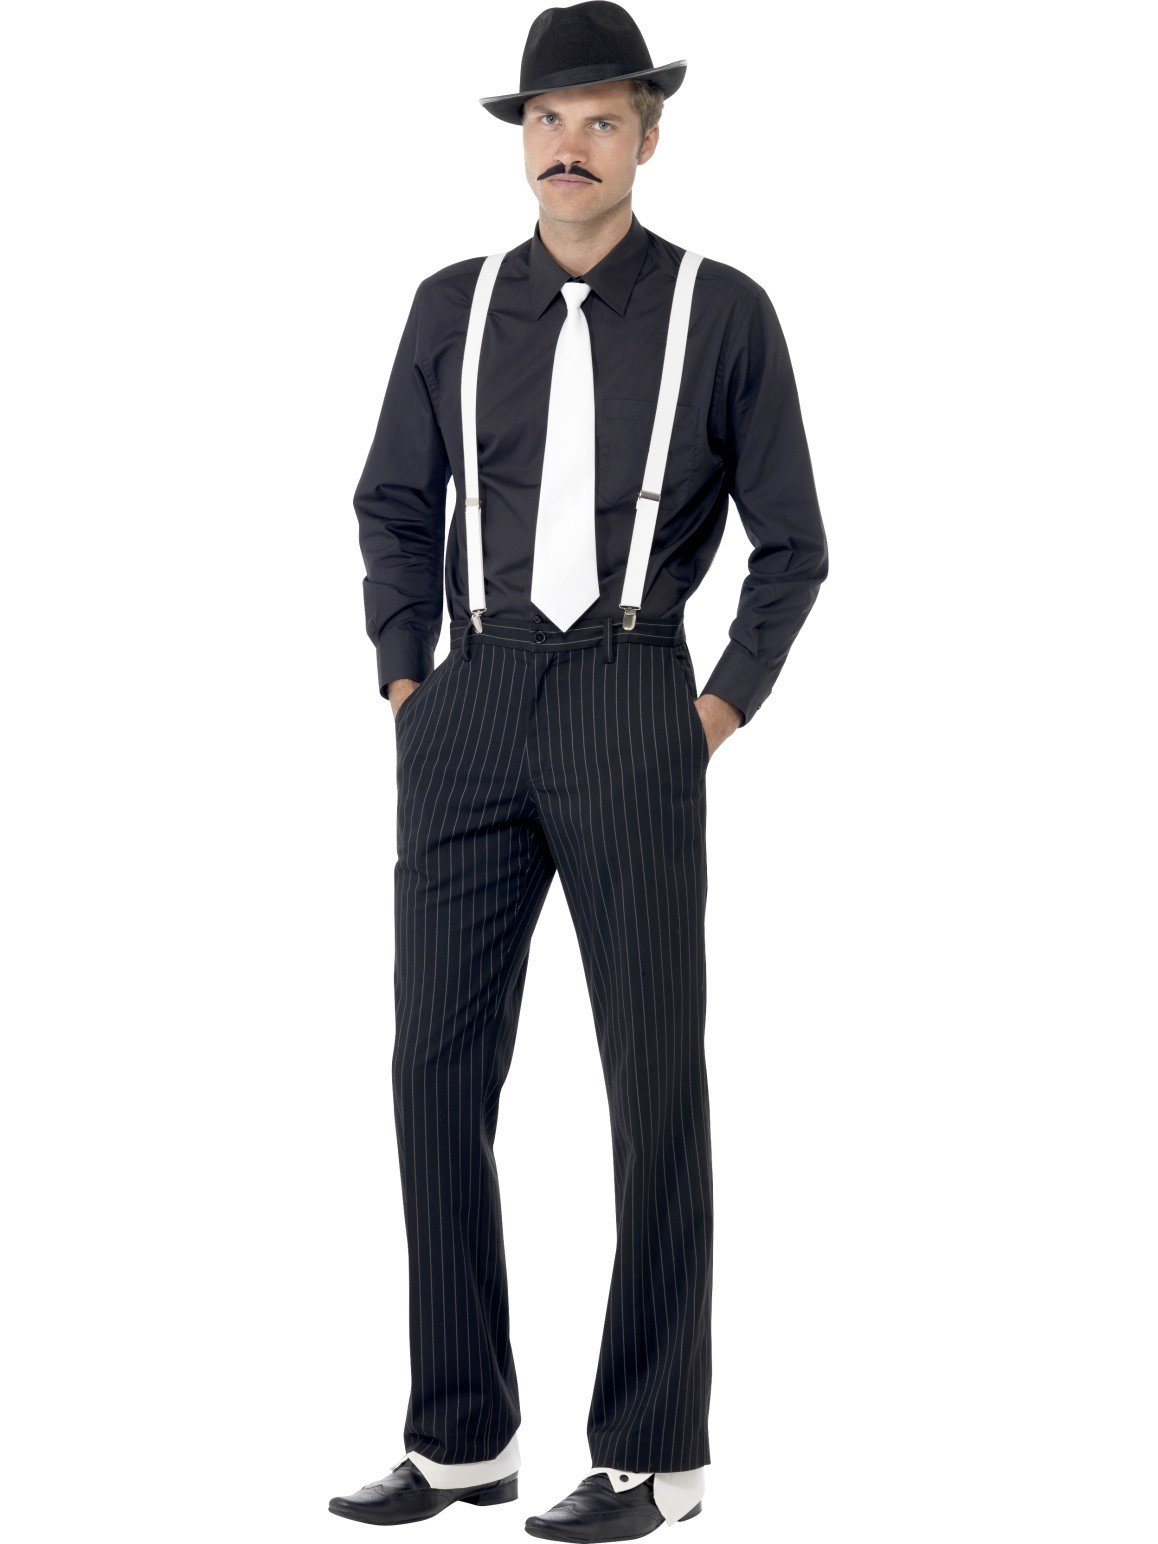 6a9c1b03664114 Sc 1 St Disguises Costumes. image number 29 of 1920 gangsters costume ...